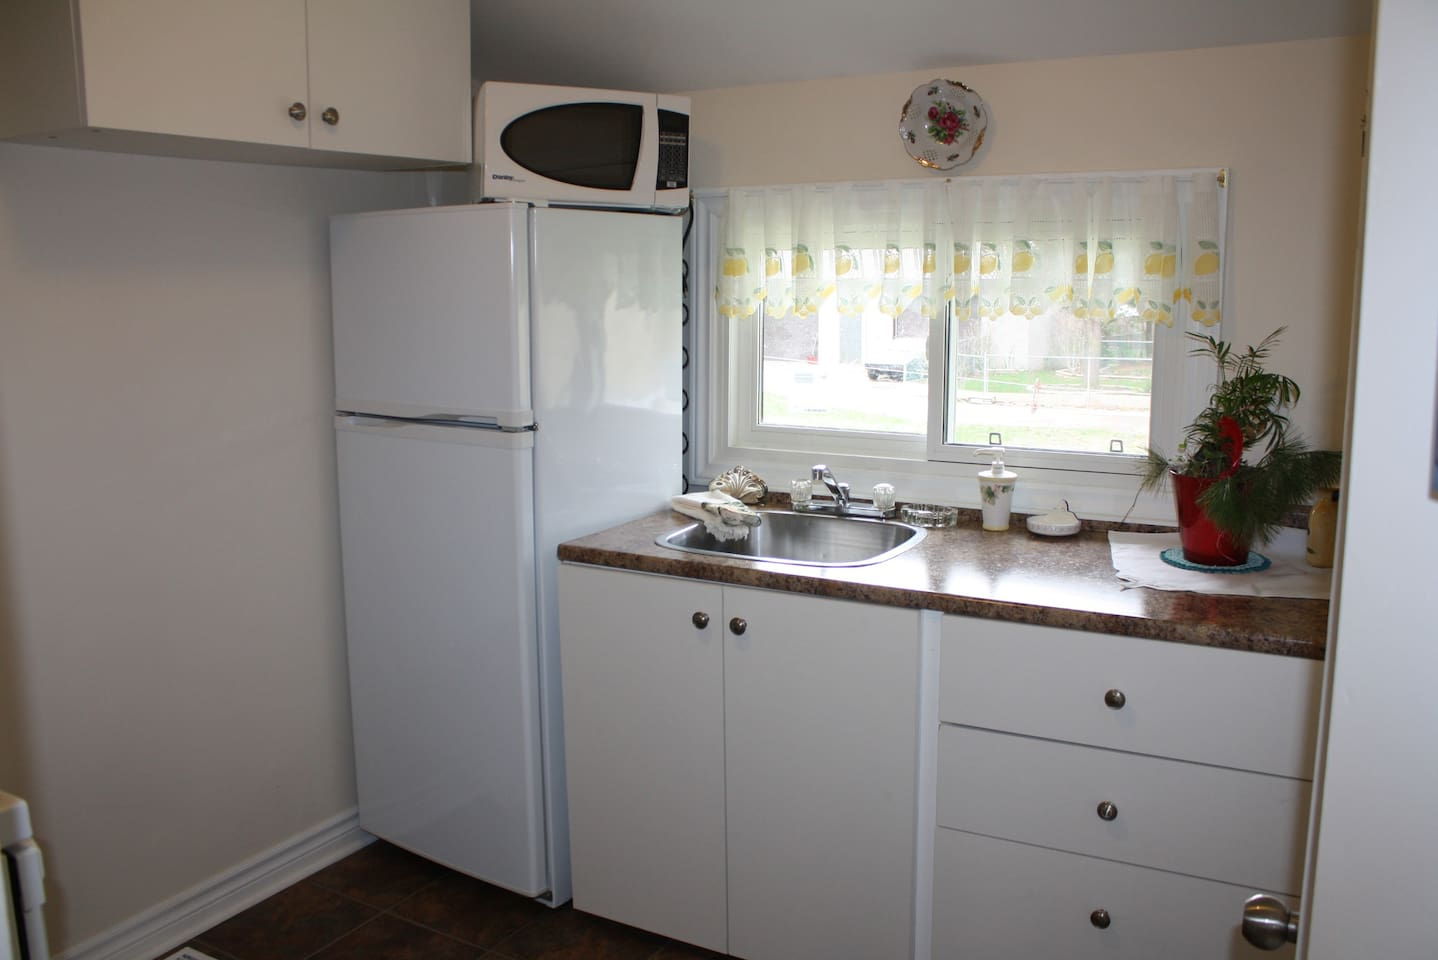 brend new house for rent, clean,